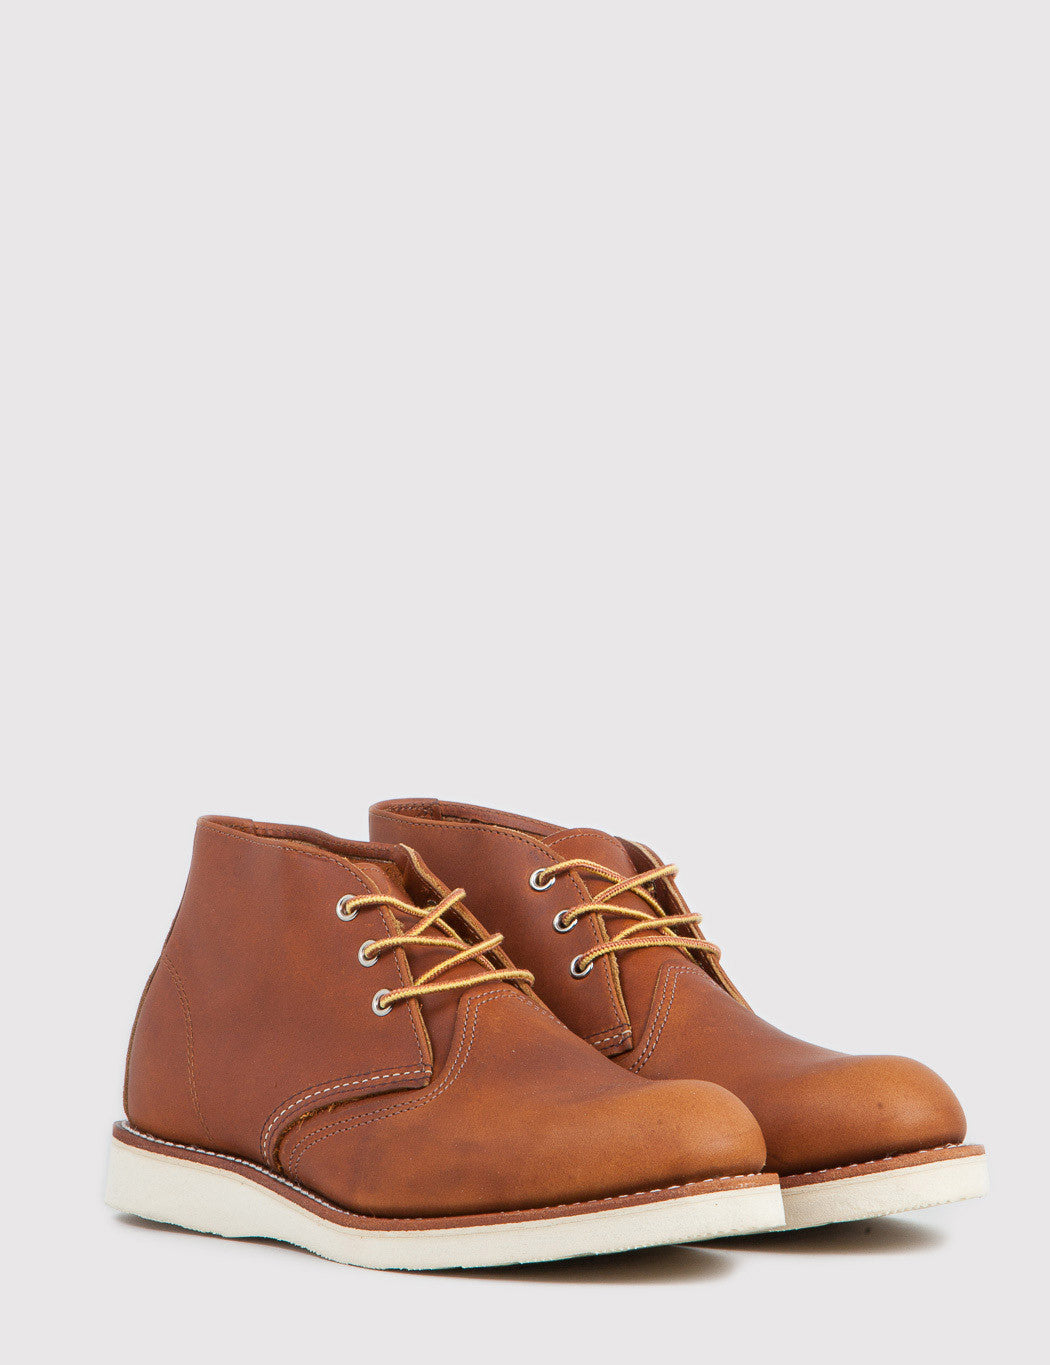 Red Wing 3140 Heritage Work Chukka - Tan